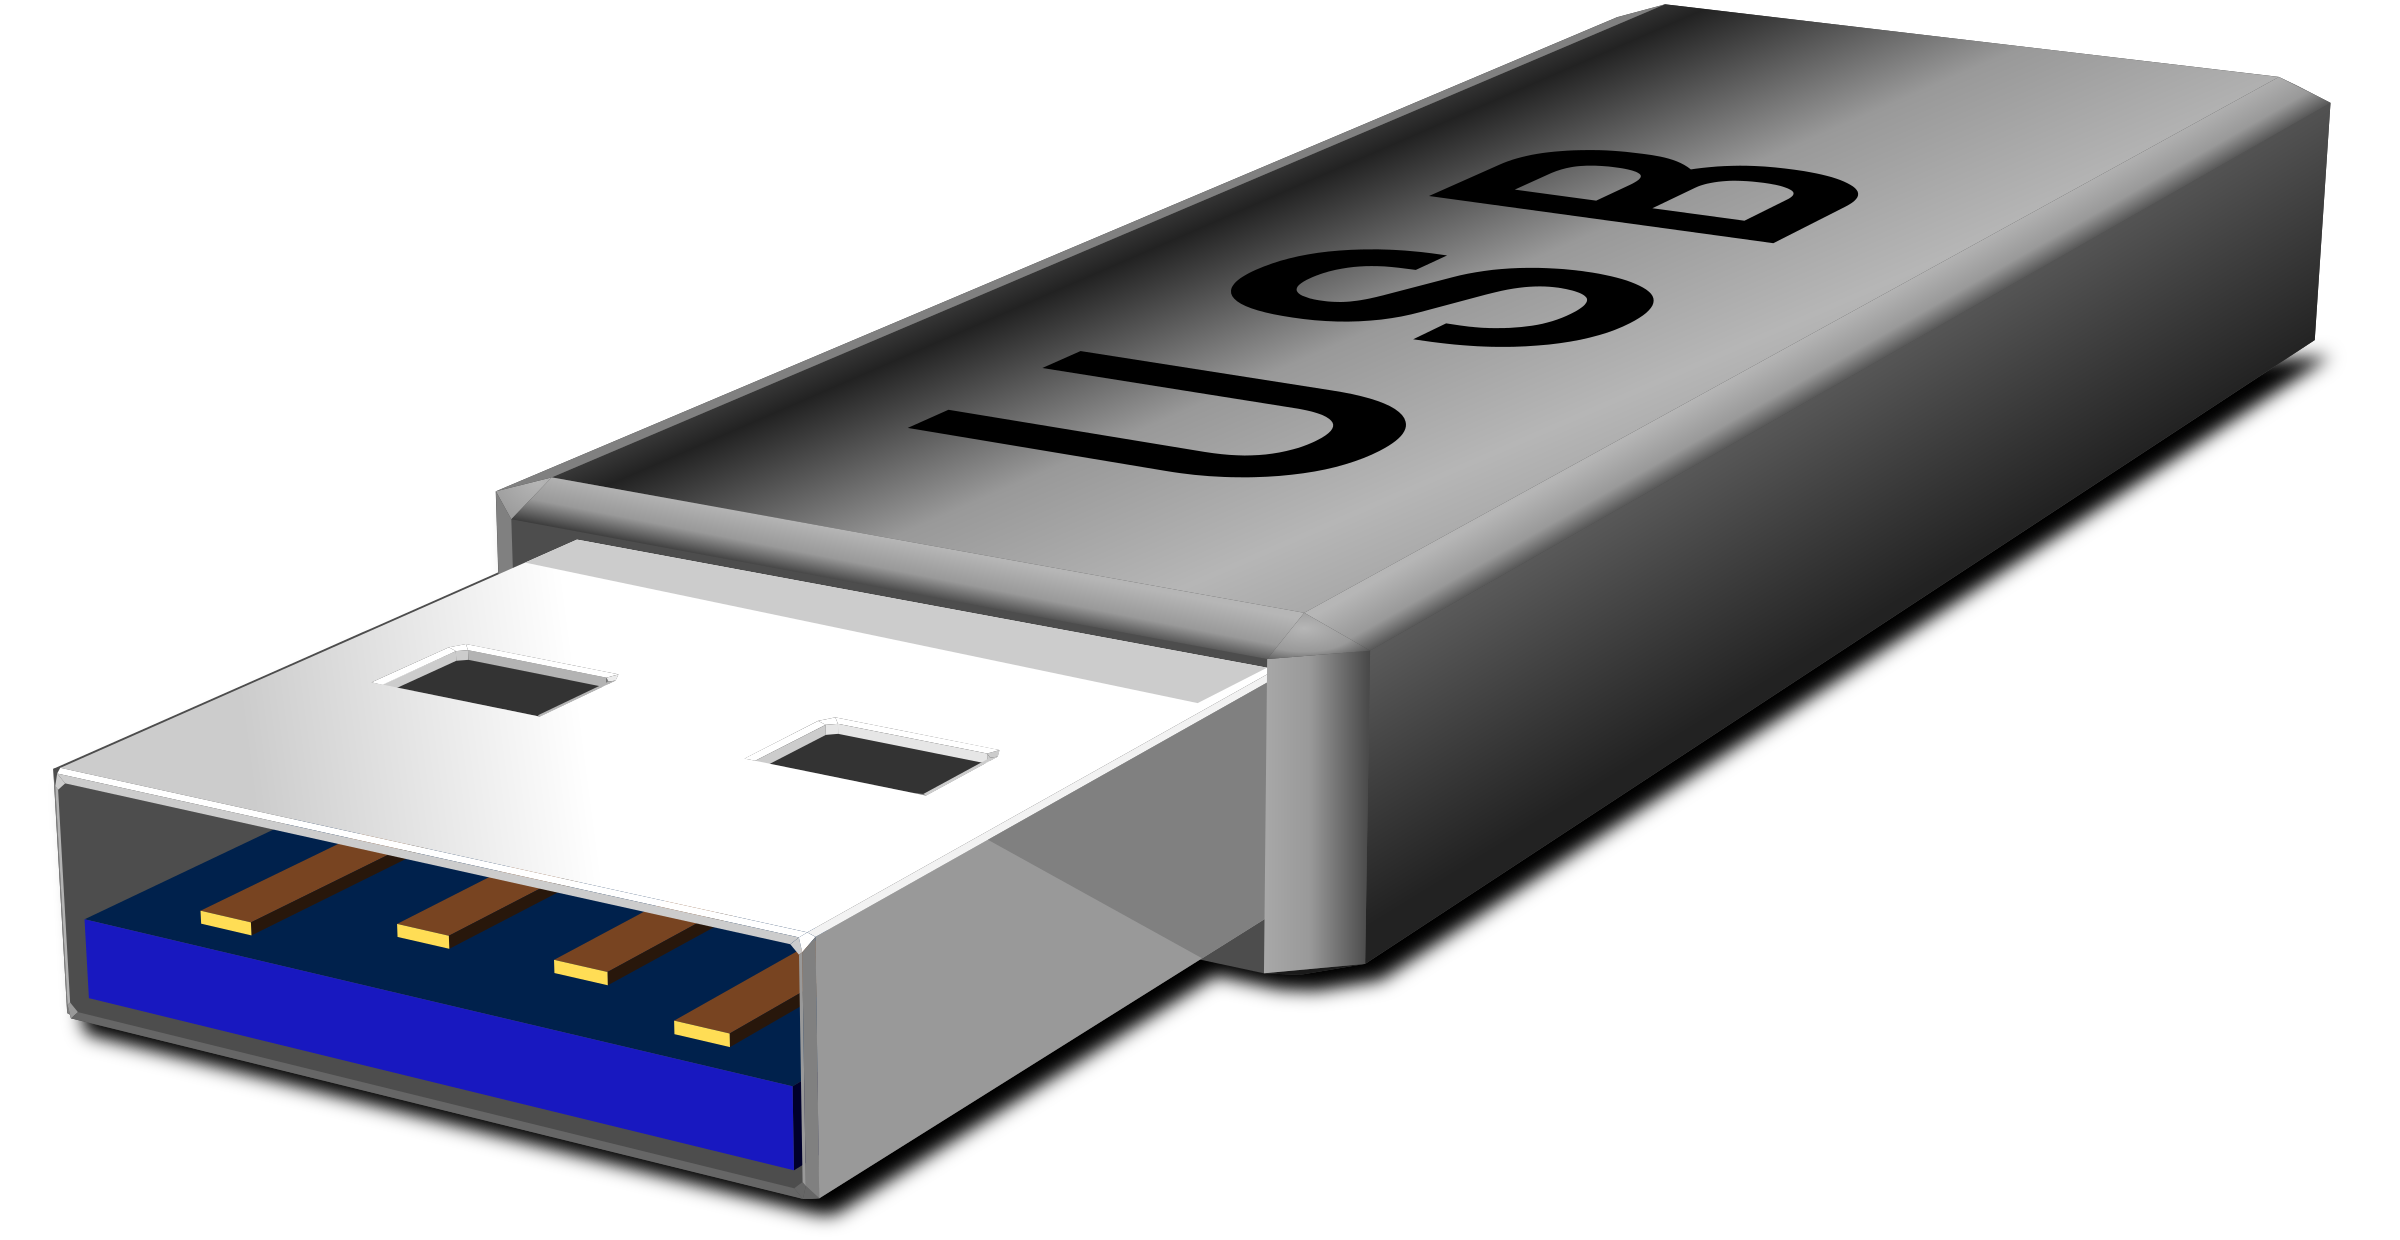 usb flash by Keistutis